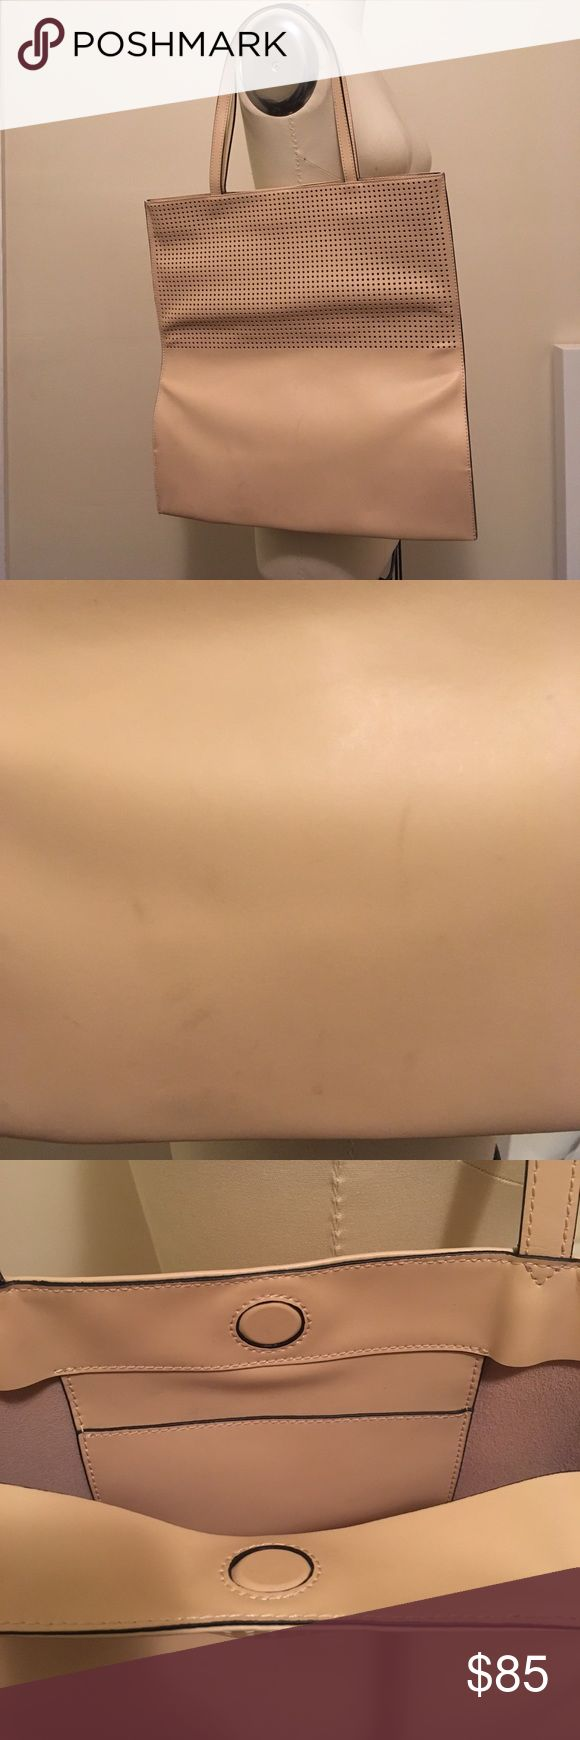 & Other Stories Medium Leather Tote Used & Other Stories Medium Leather Tote in nude color with perforated leather details. Some marks on leather as shown in picture. Magnetic closure, one inside pocket. Sides aren't shaped but bottom expands. & Other Stories Bags Totes